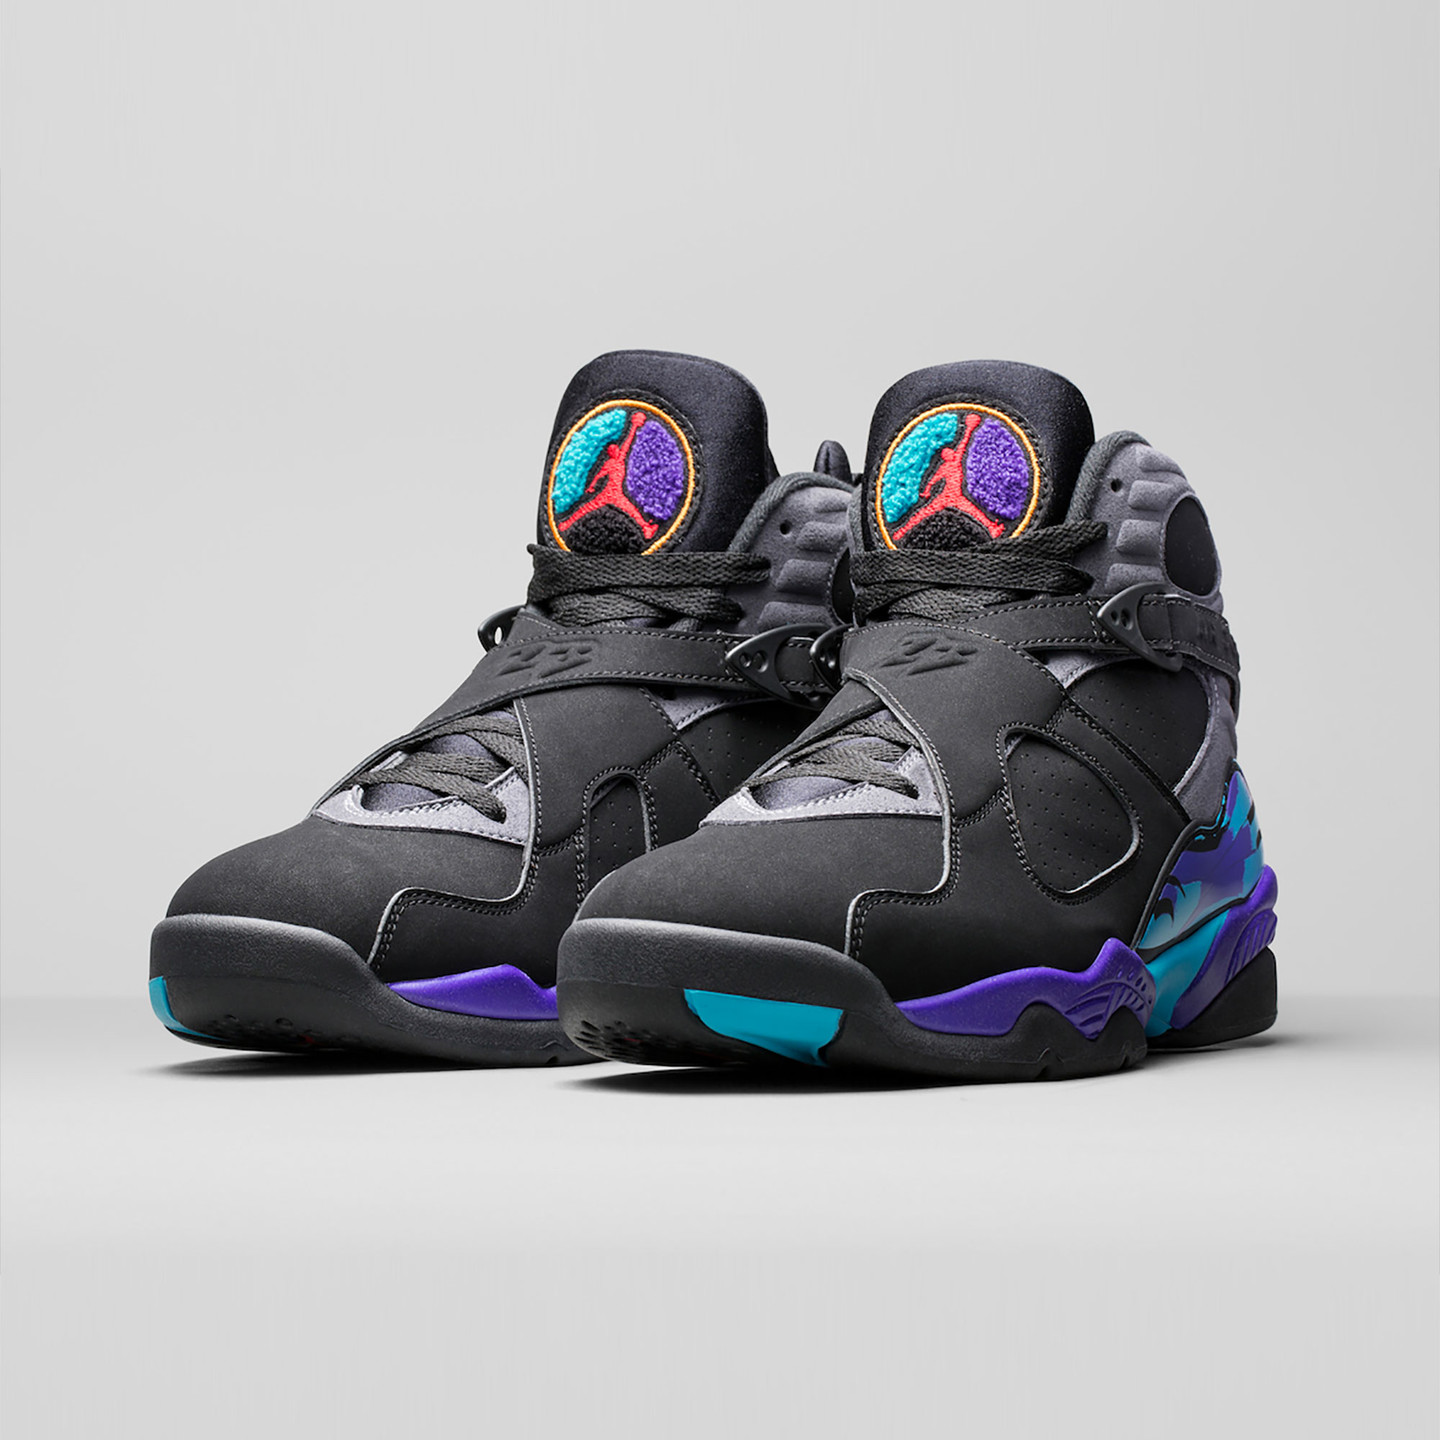 Jordan Air Jordan Retro 8 'Aqua' Black/True Red-Flint Grey-Bright Concord 305381-025-44